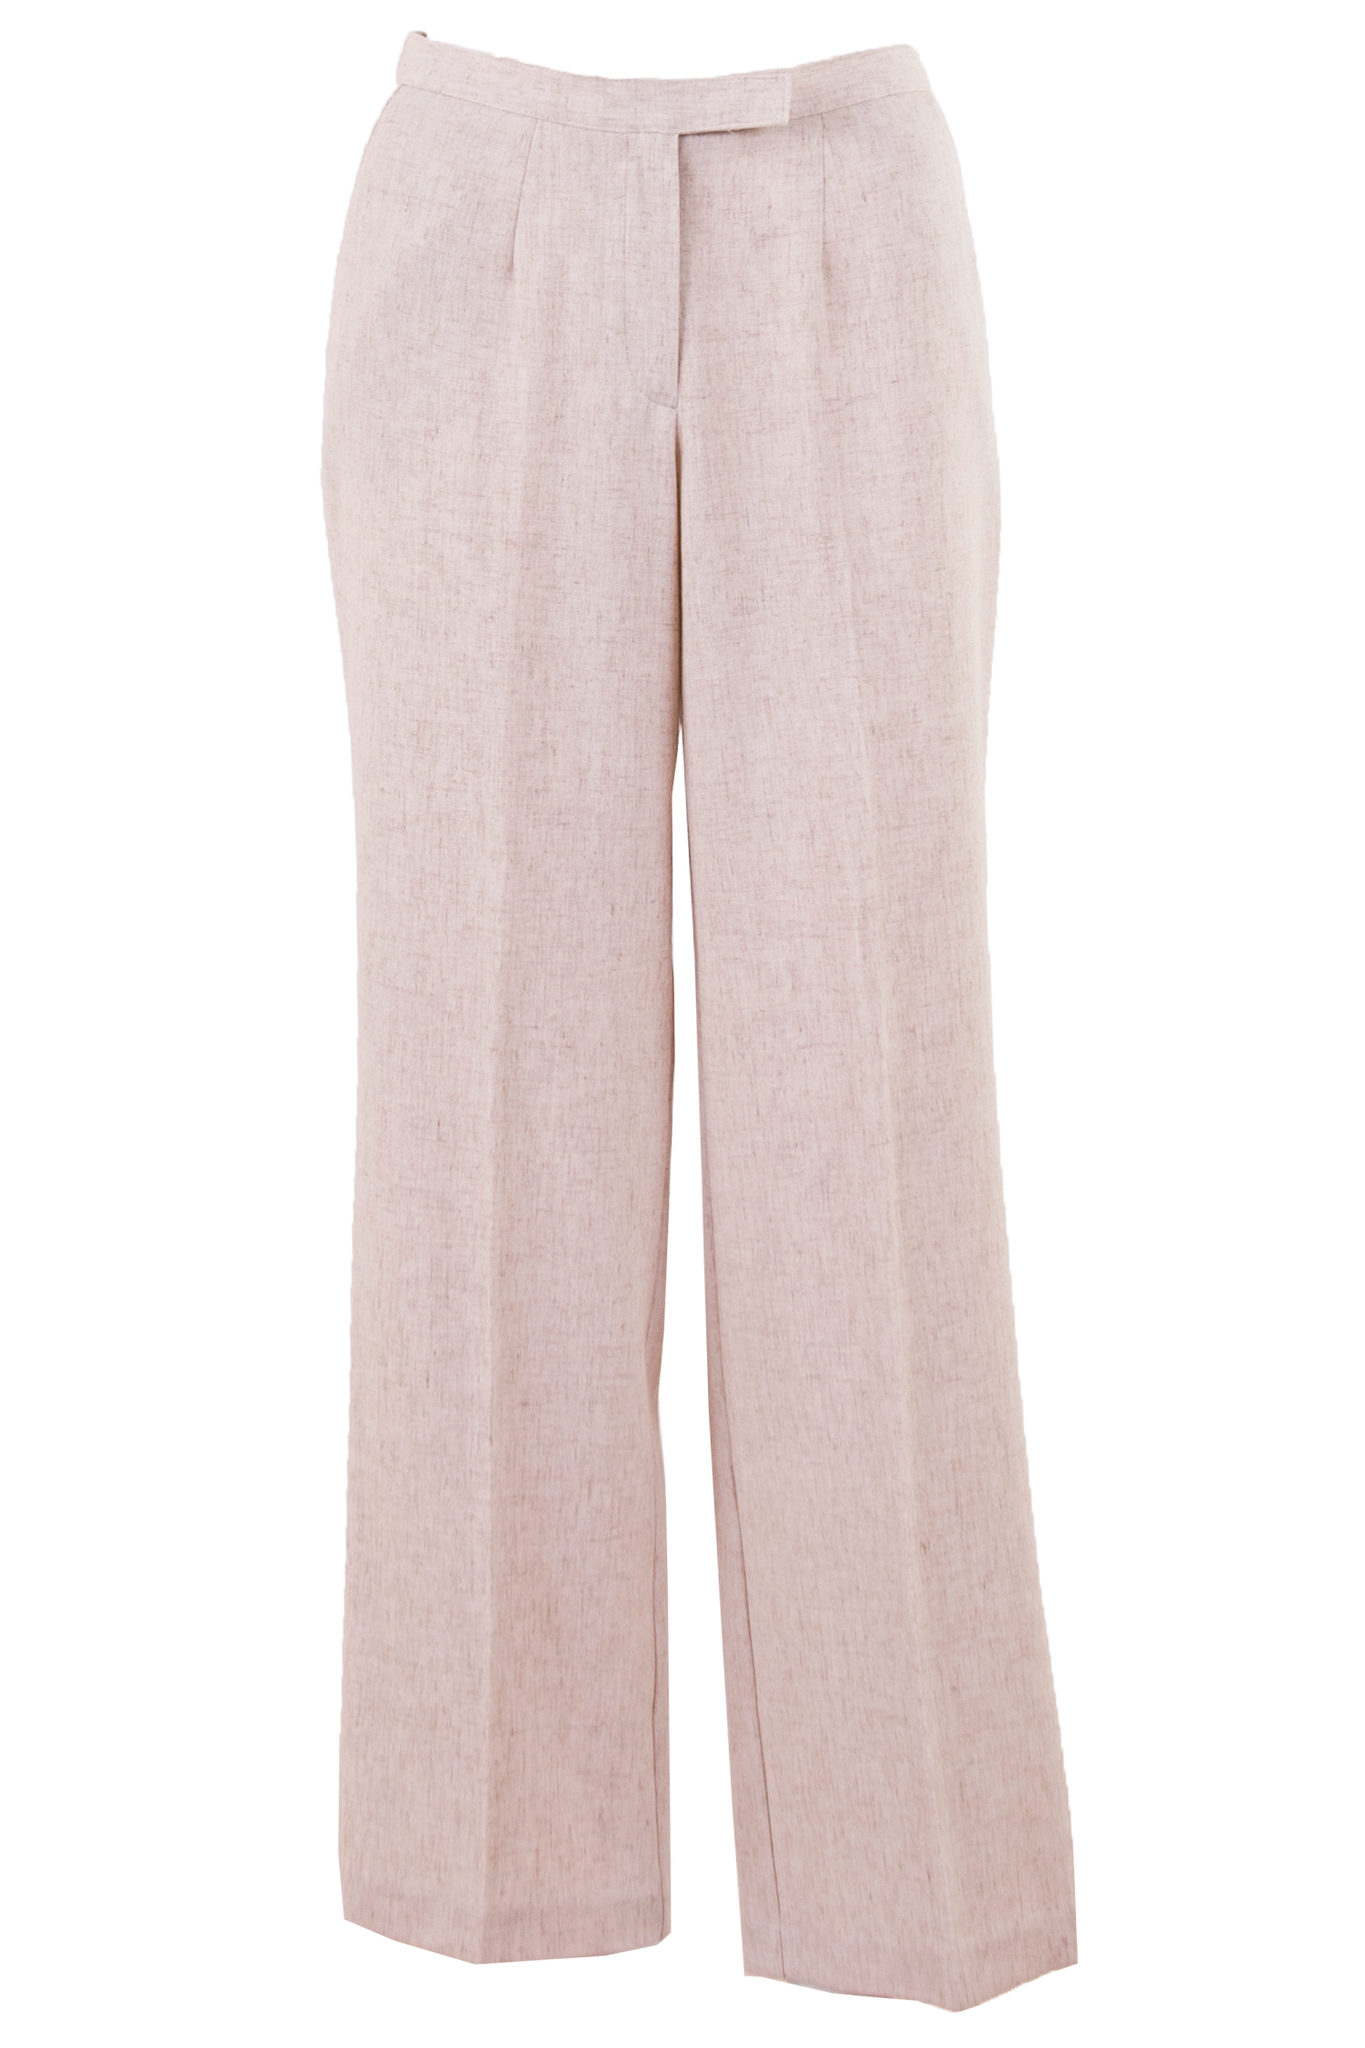 vintage off-white slacks with flat front